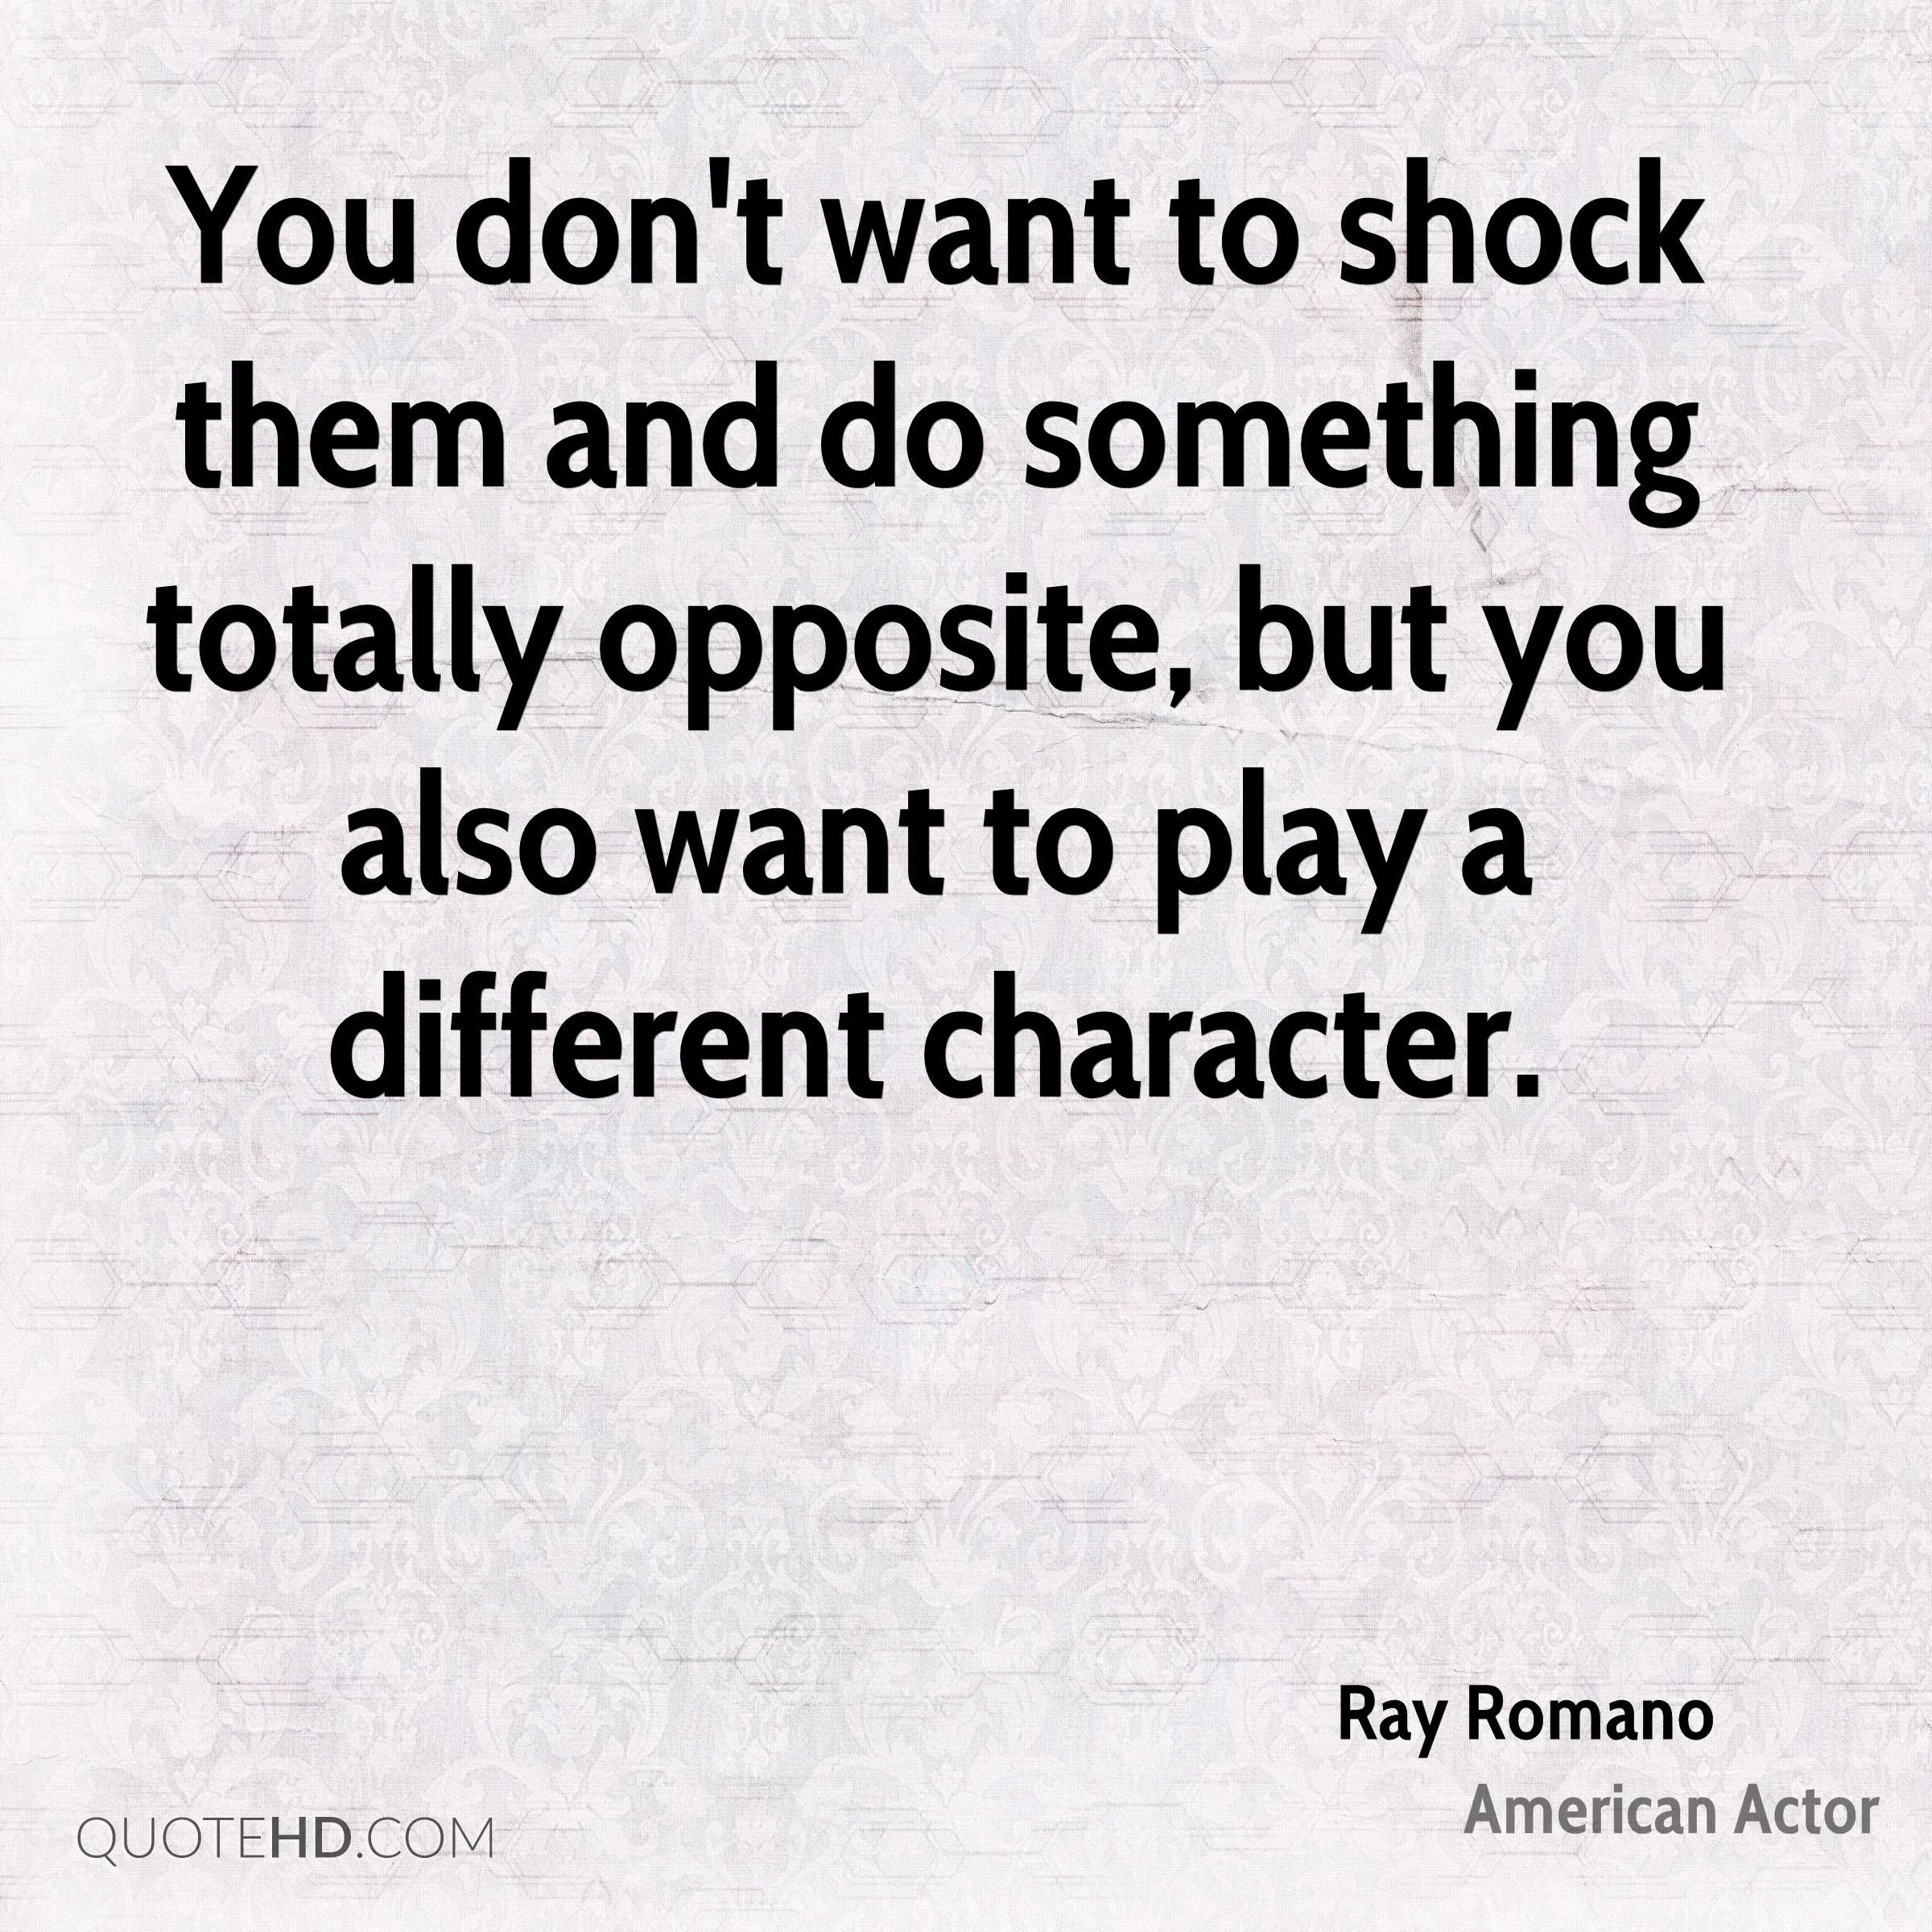 You don't want to shock them and do something totally opposite, but you also want to play a different character.